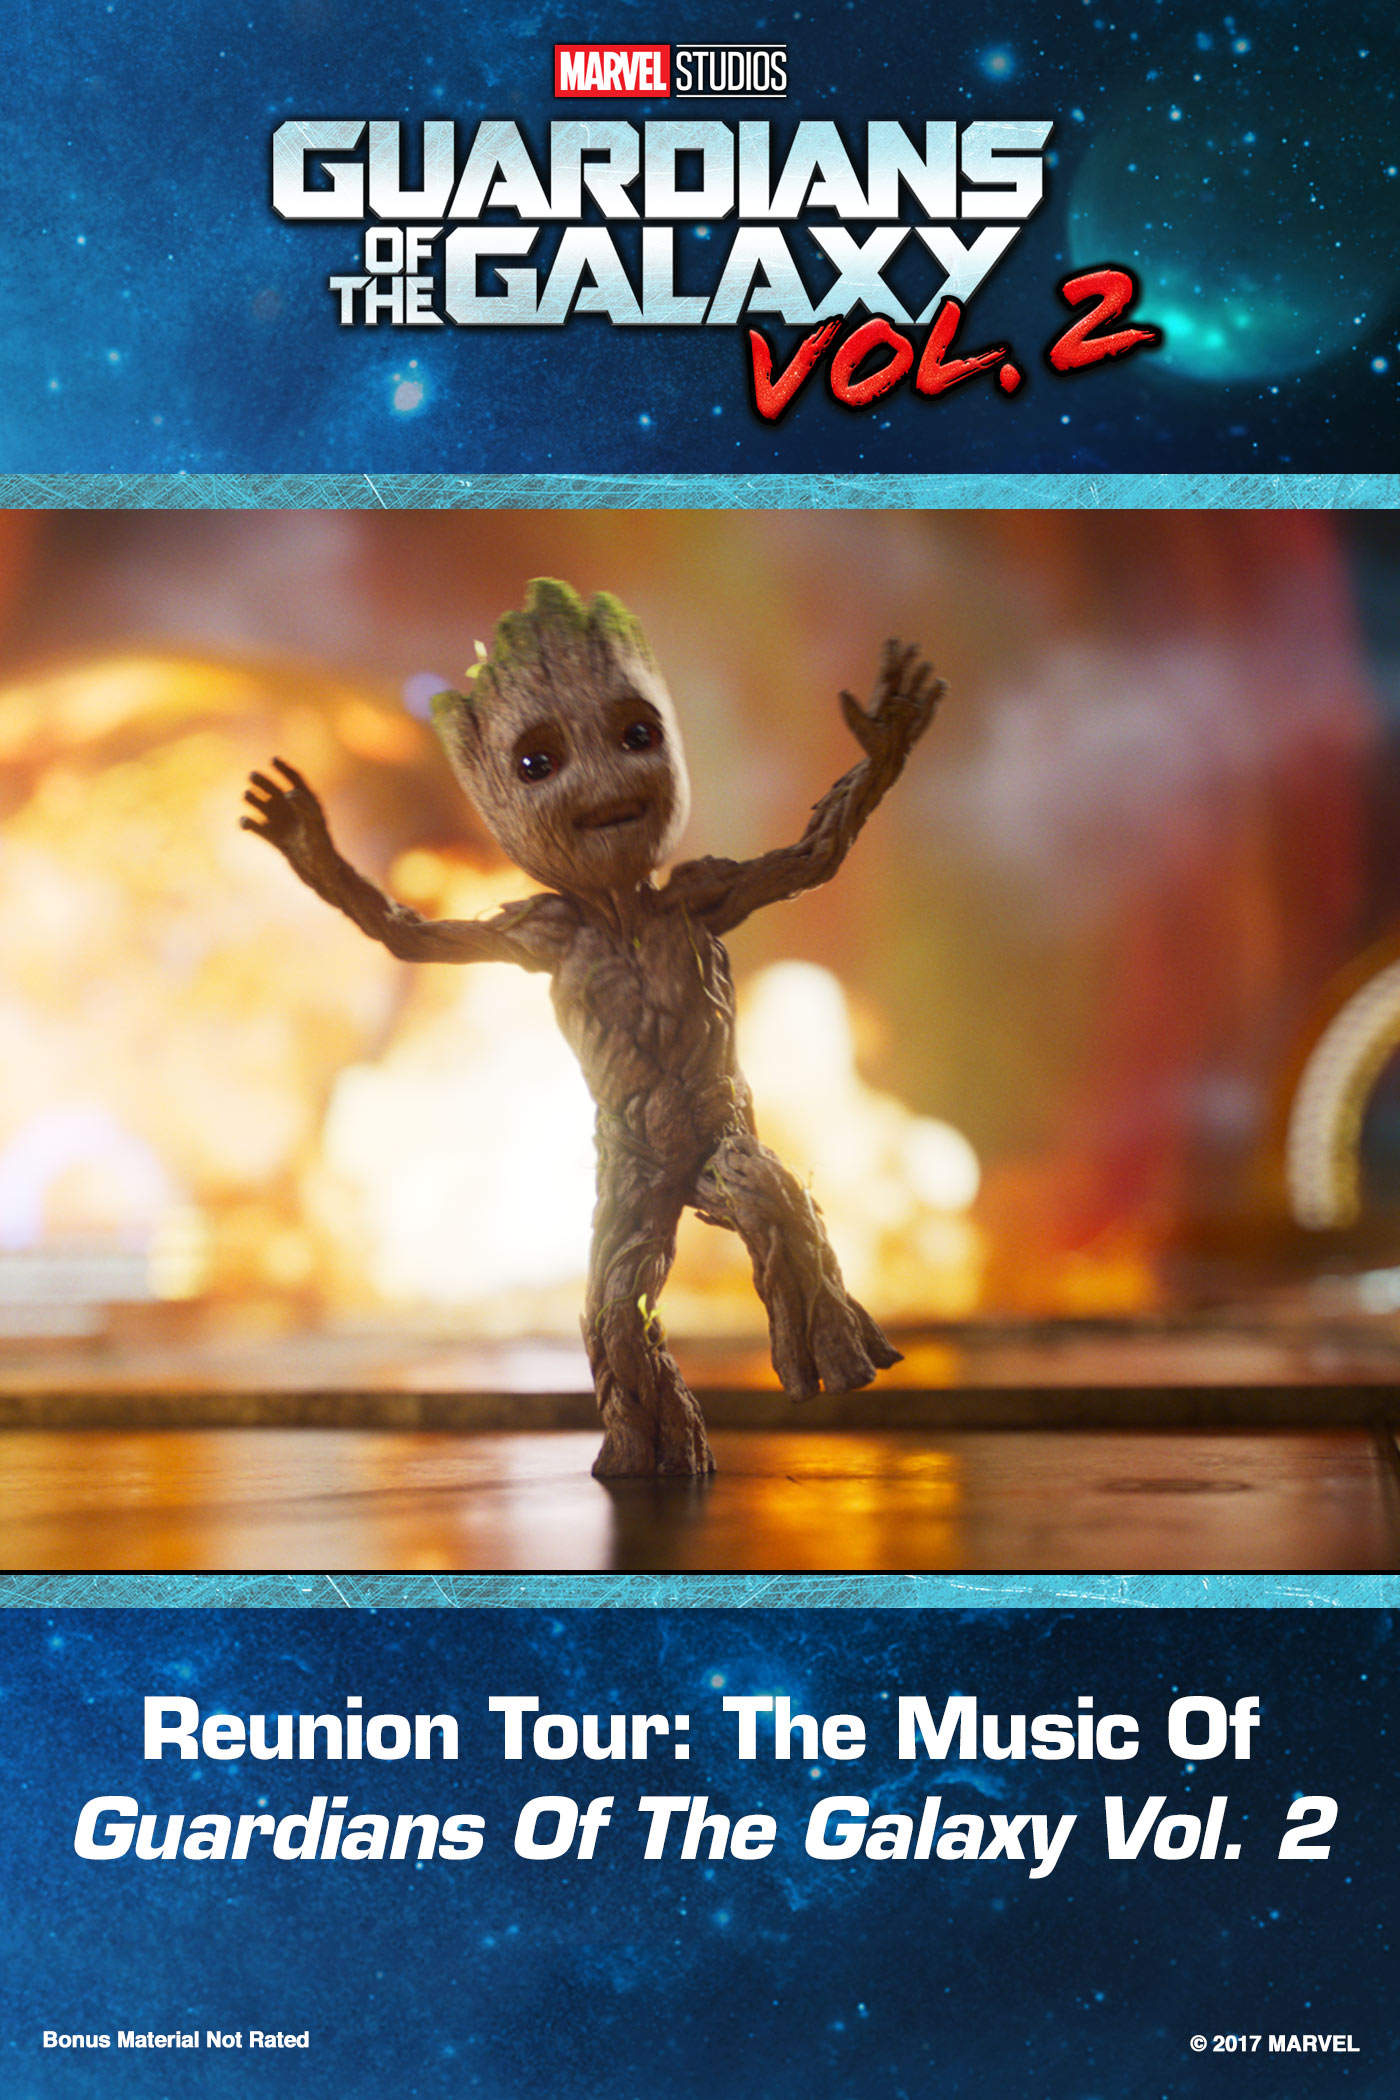 Reunion Tour: The Music Of Guardians Of The Galaxy     Vol. 2